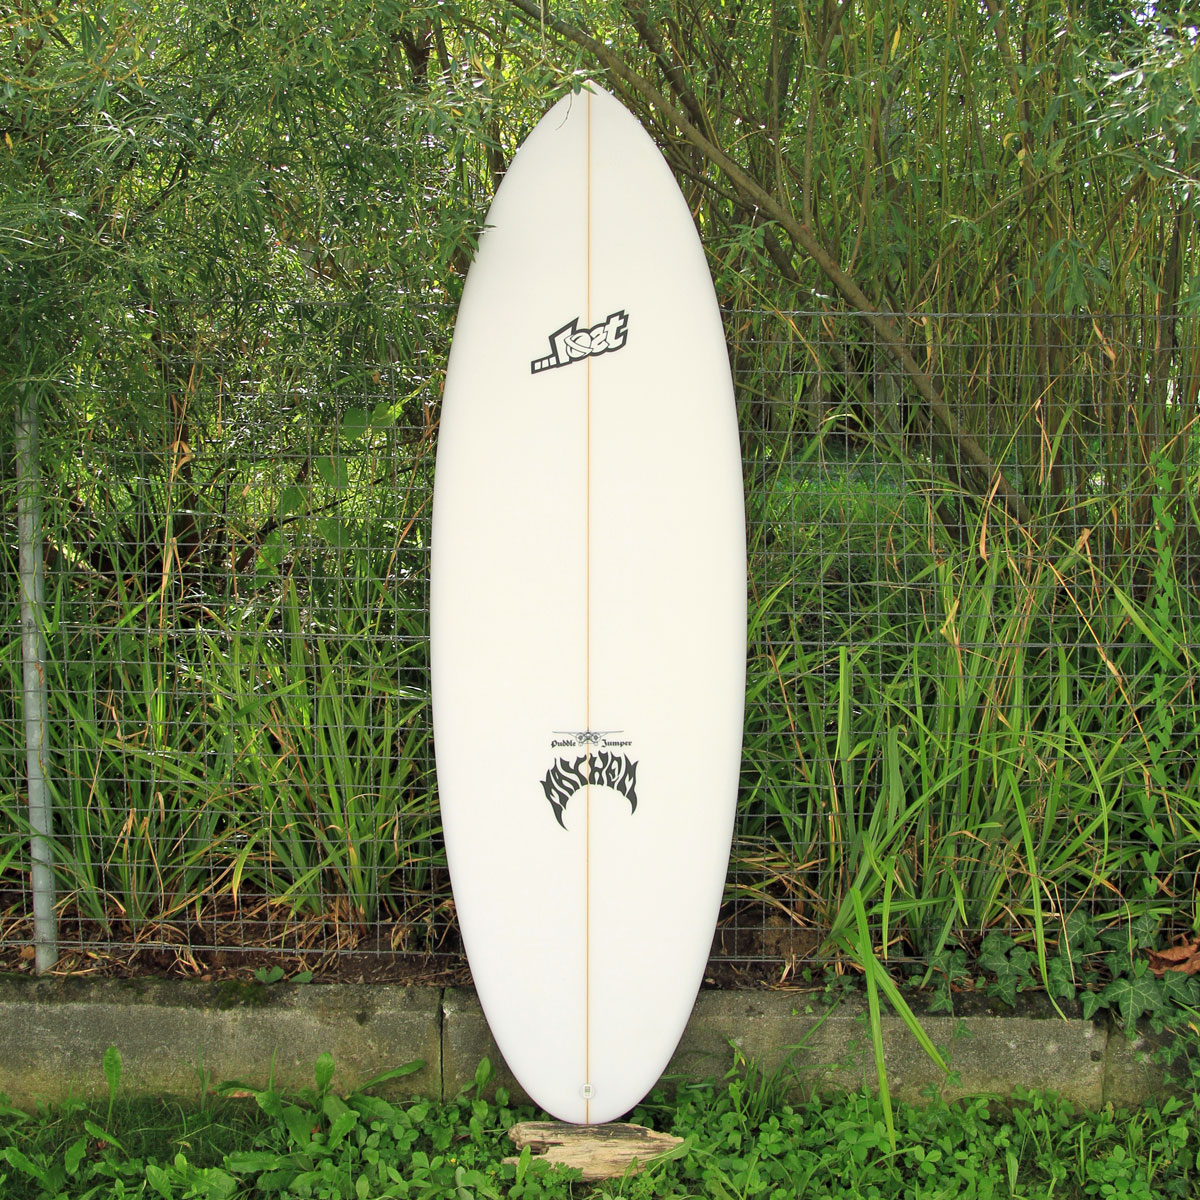 Lost Puddle Jumper RP Surfboard